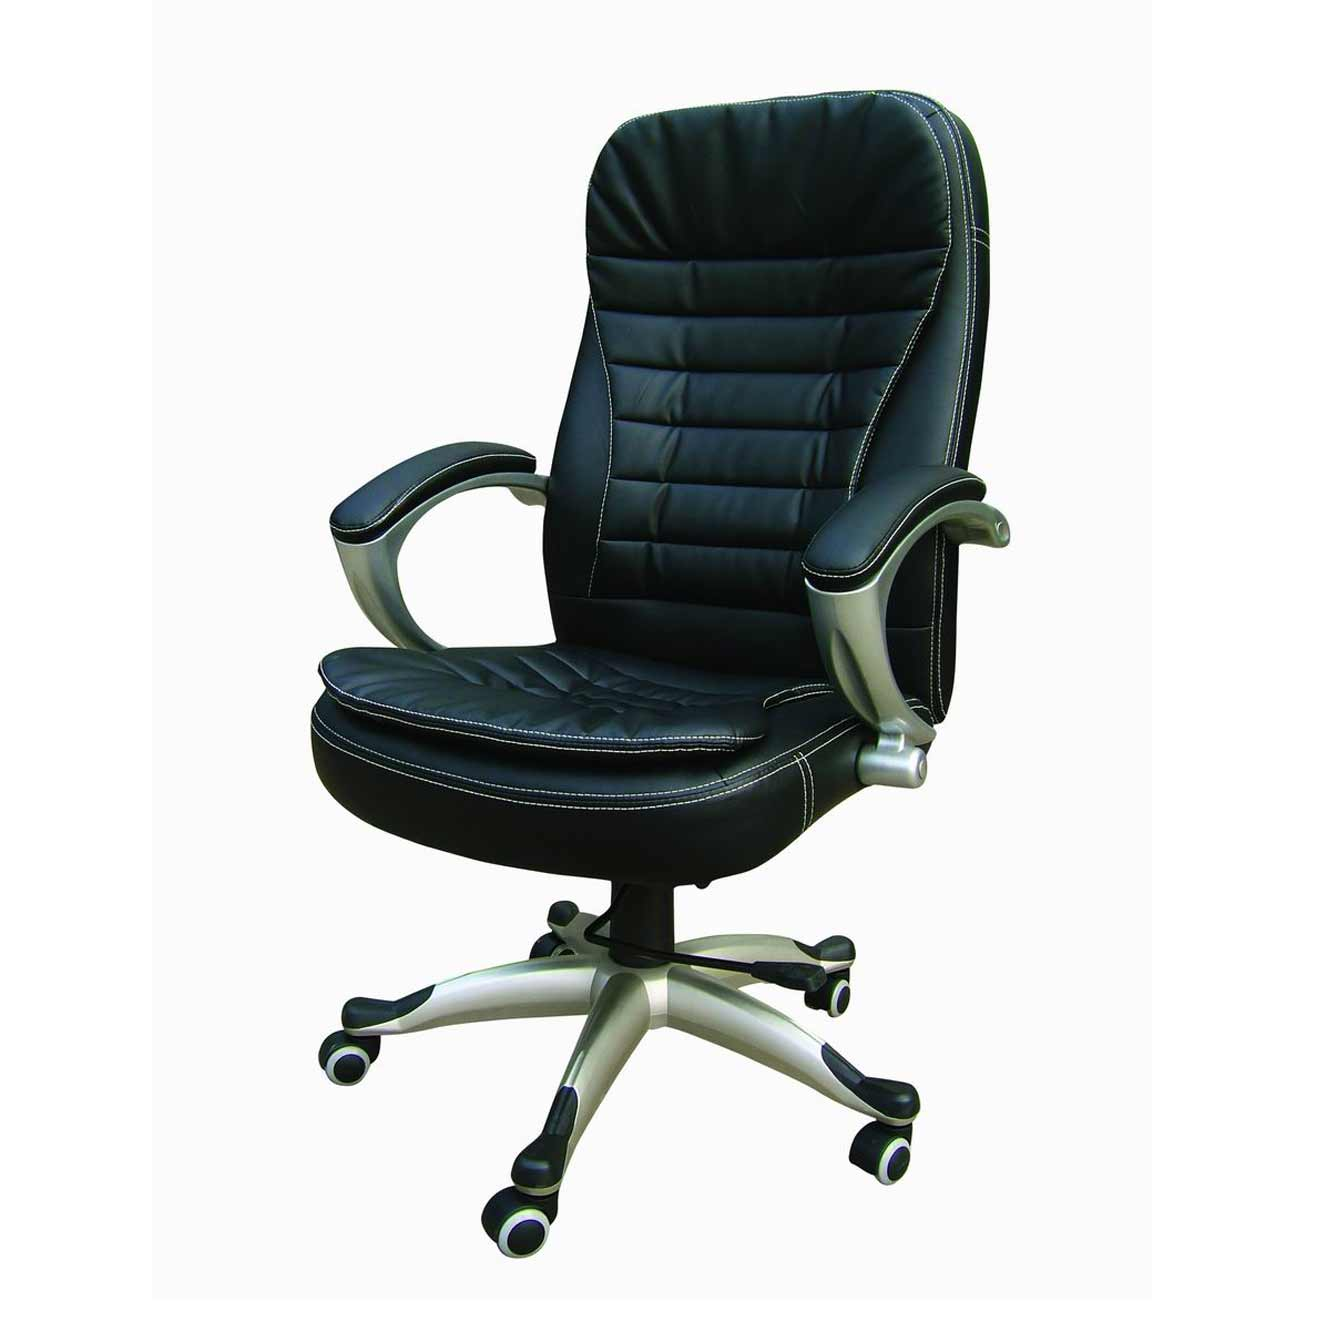 Lumbar Support fice Chair Viewing Gallery